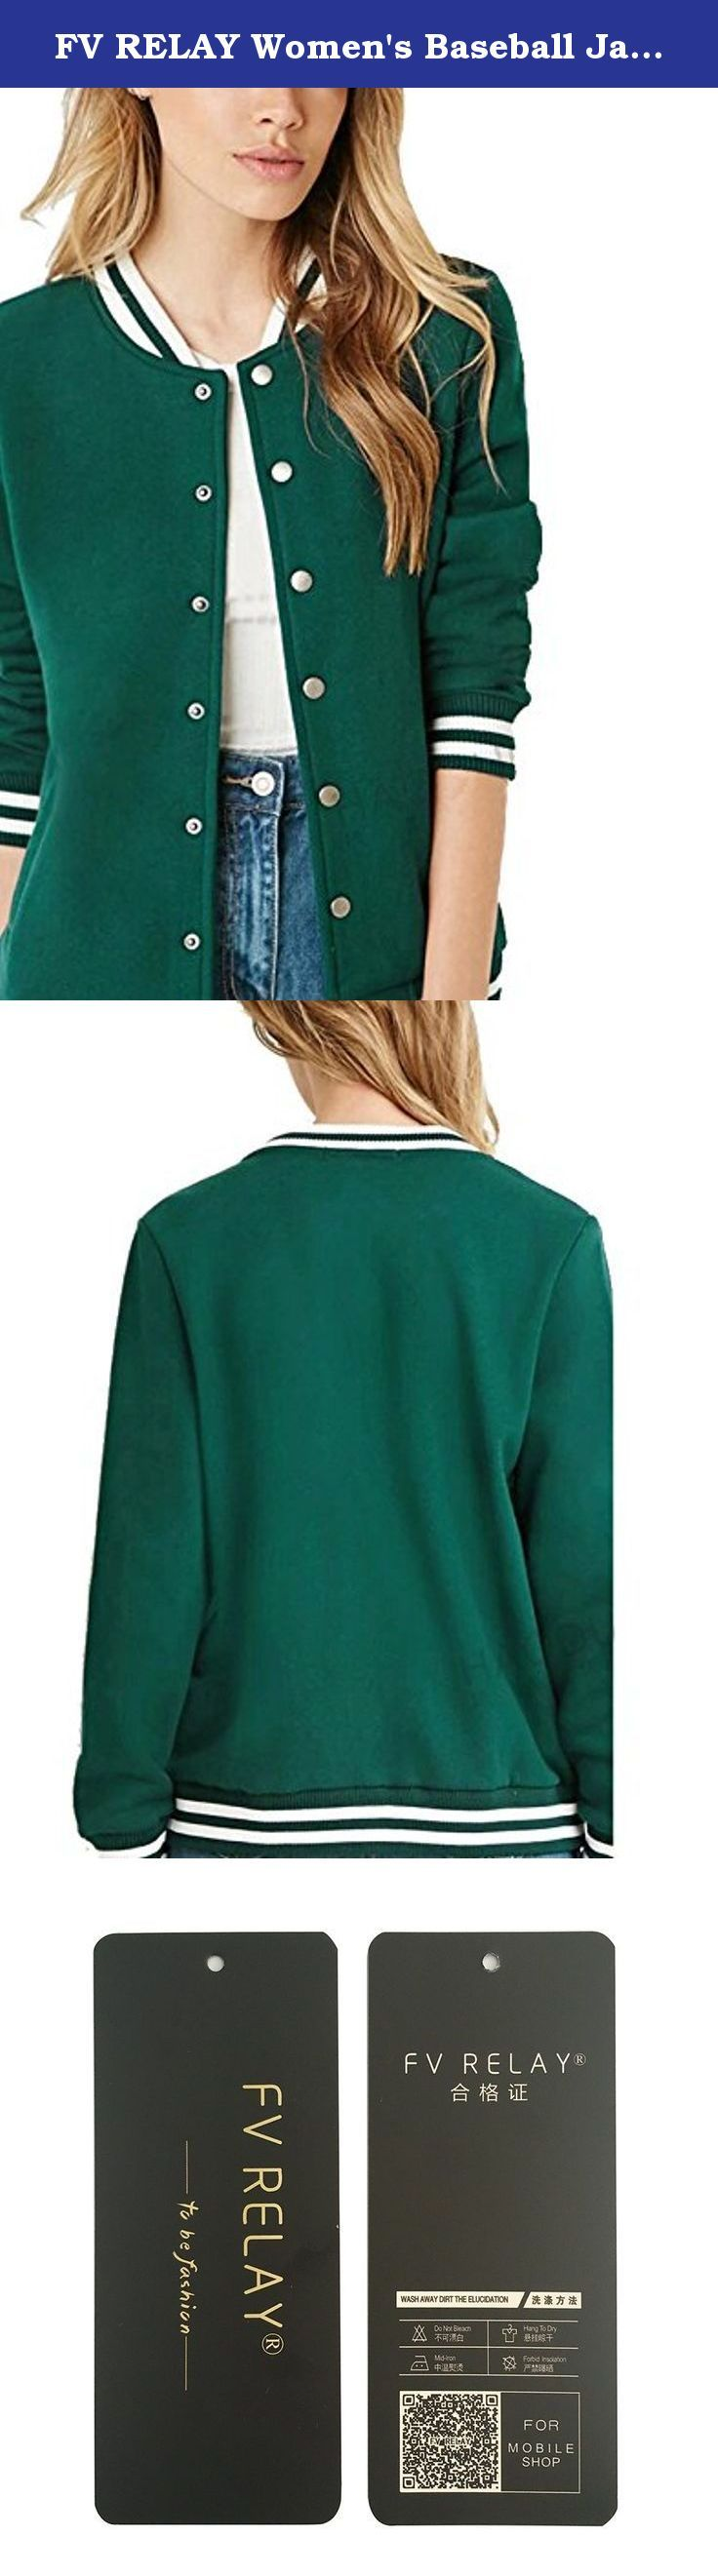 FV RELAY Women's Baseball Jackets Casual Varsity Velvet Short Coats Outwear (M,Green). Descriptions: Black White Hit Color Rib Mosaic Baseball Clothes . NEW Autumn Winter Velvet Warm Jacket ( Please refer to the model pictures ) The sizes in our listing are Asian size and it is maybe 1-2 sizes smaller than US size, pls choose the right size. The fittest size is the best. Measurements: S : Length-59.5(cm); Bust-92(cm); Sleeve-59.5(cm); Shoulder-36(cm). M : Length-60.5(cm); Bust-96(cm);...